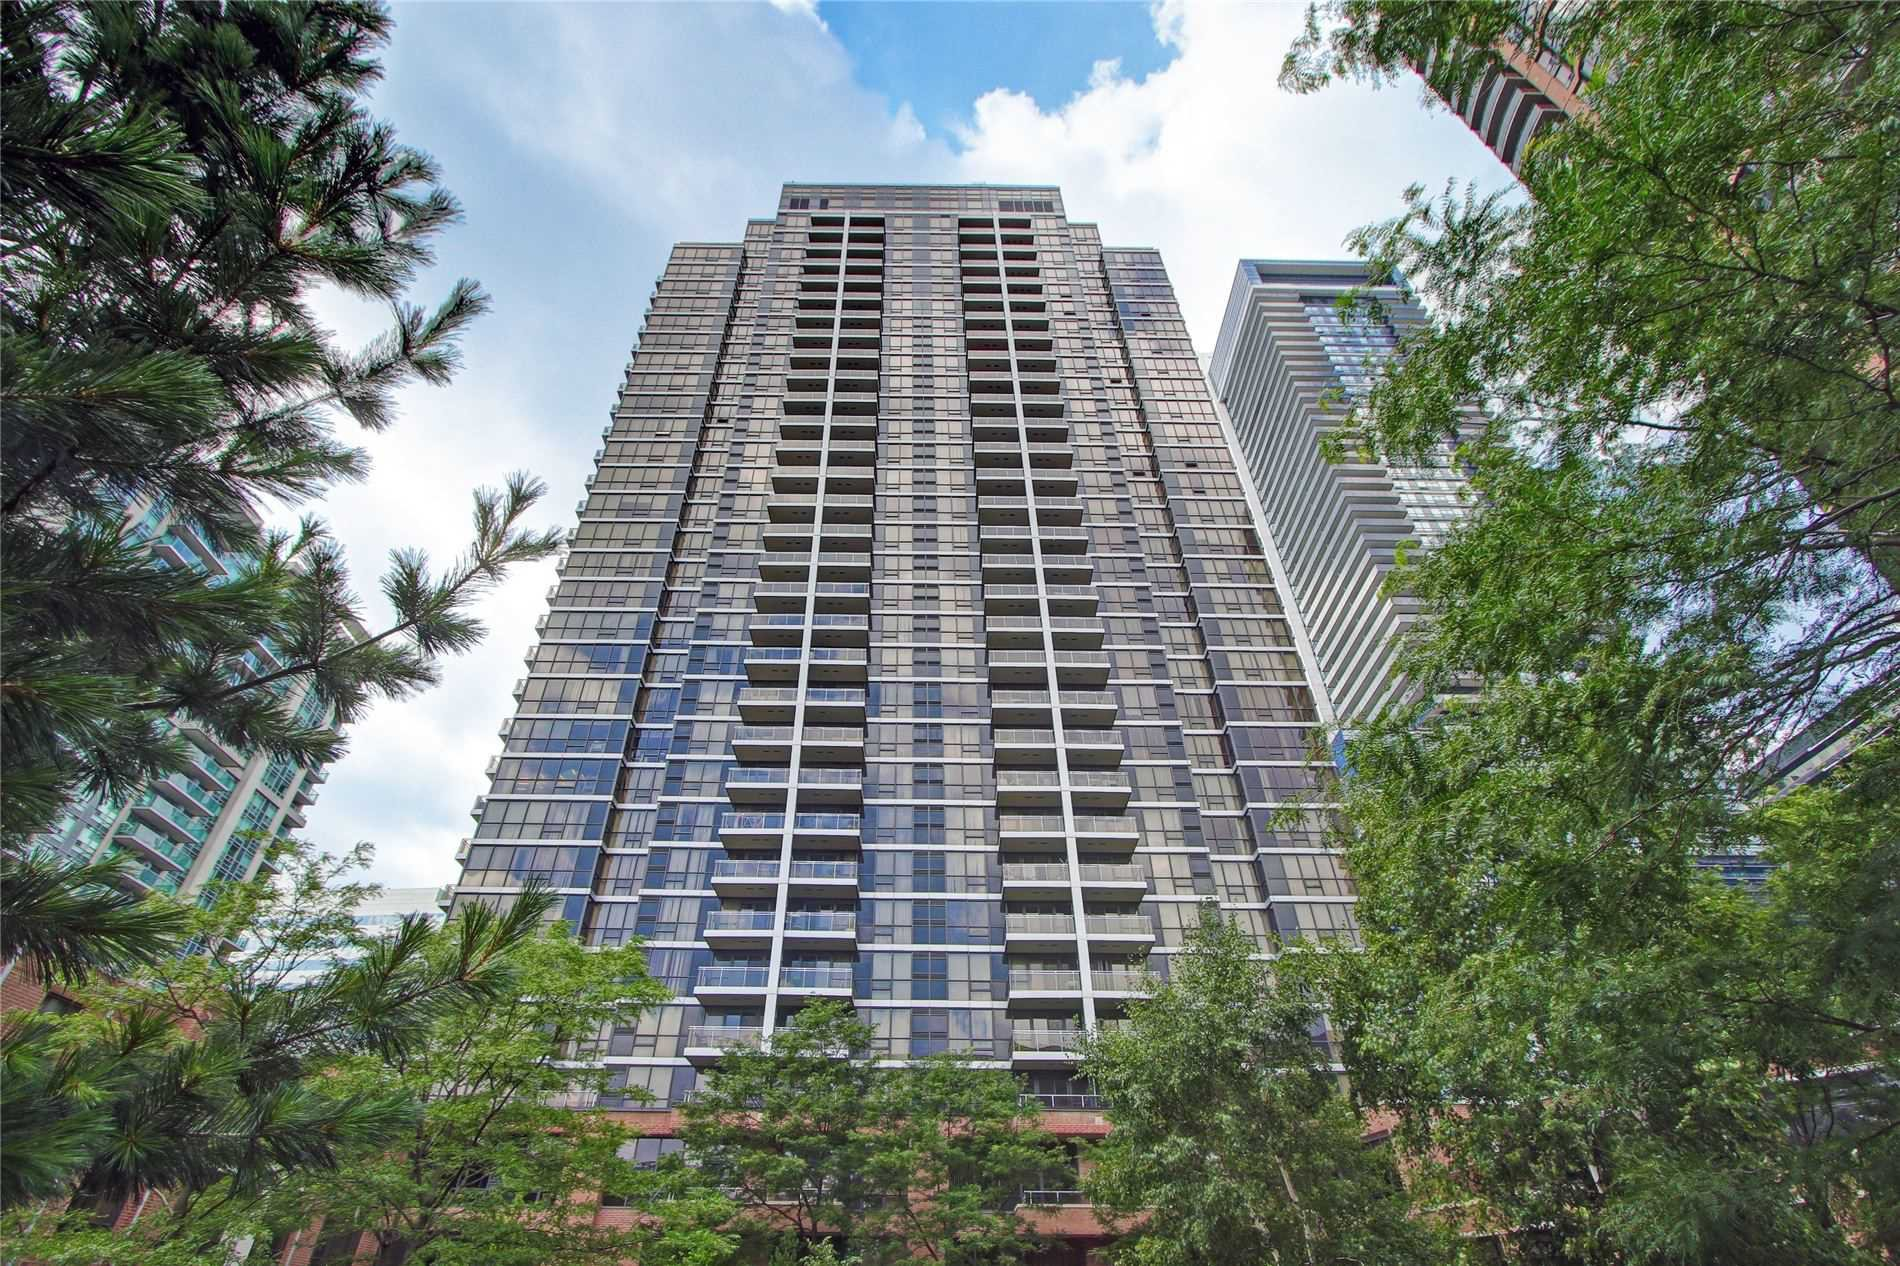 Main Photo: 1001 23 Sheppard Avenue in Toronto: Willowdale East Condo for lease (Toronto C14)  : MLS®# C4559291